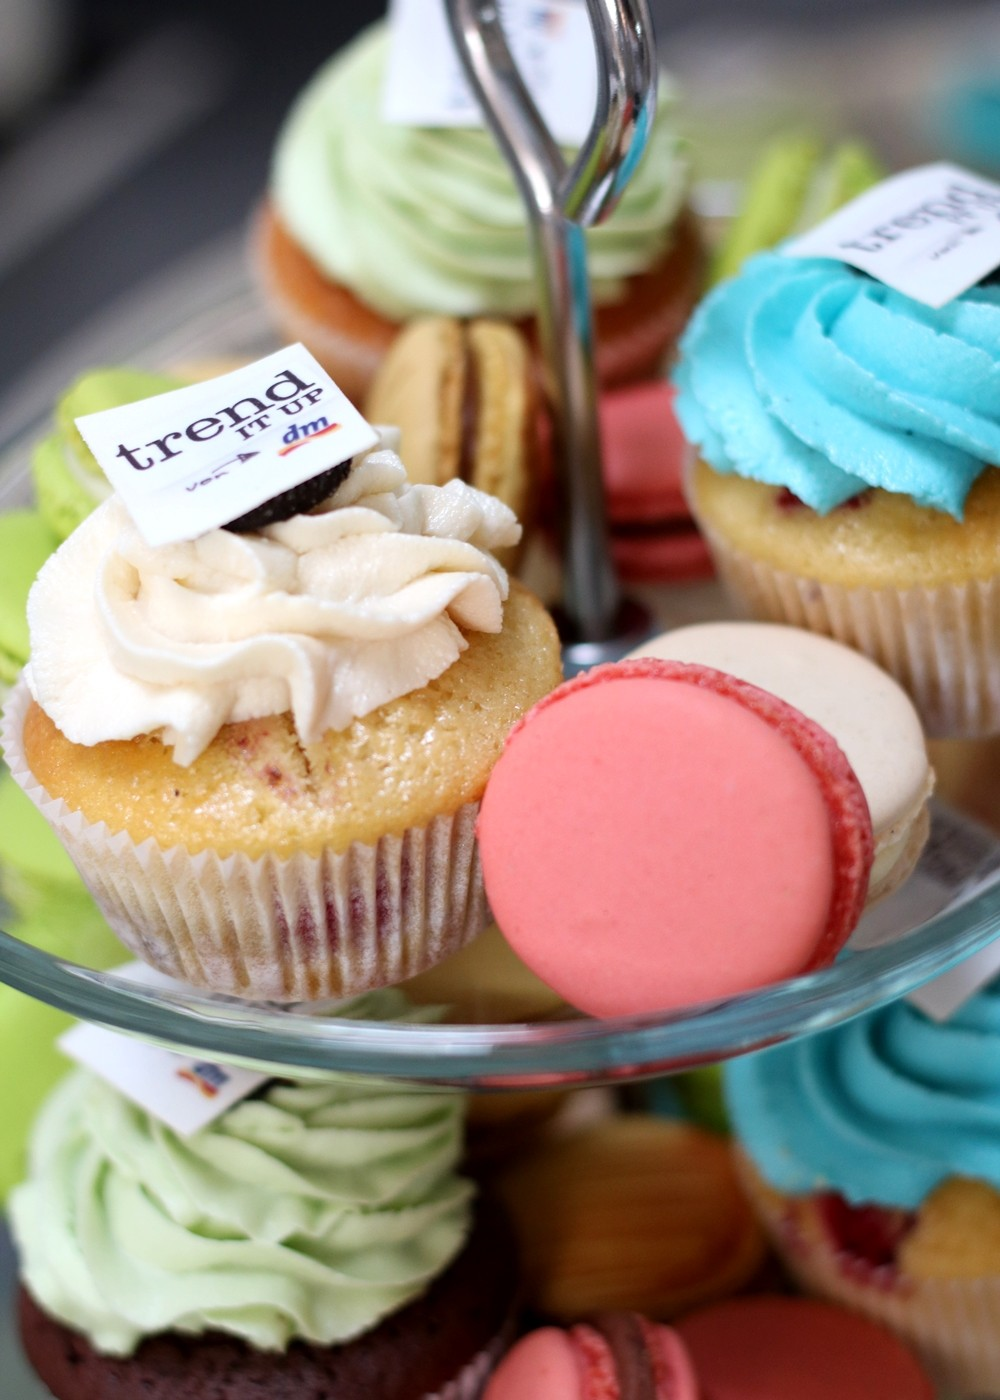 Trend it up Bloggerevent Cupcakes Macarons